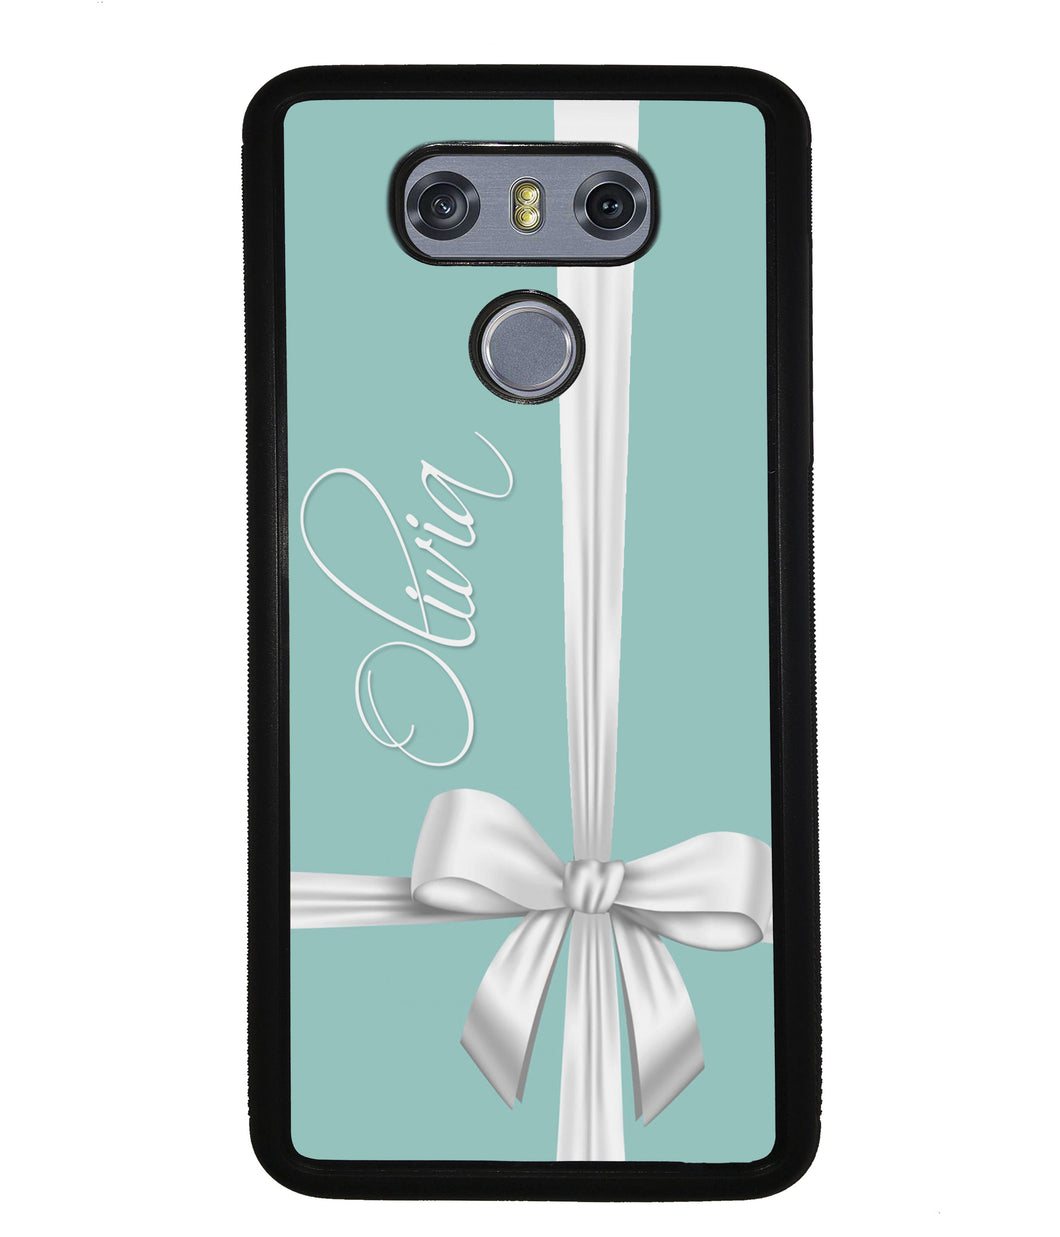 Teal Blue Bow Personalized | LG Phone Case